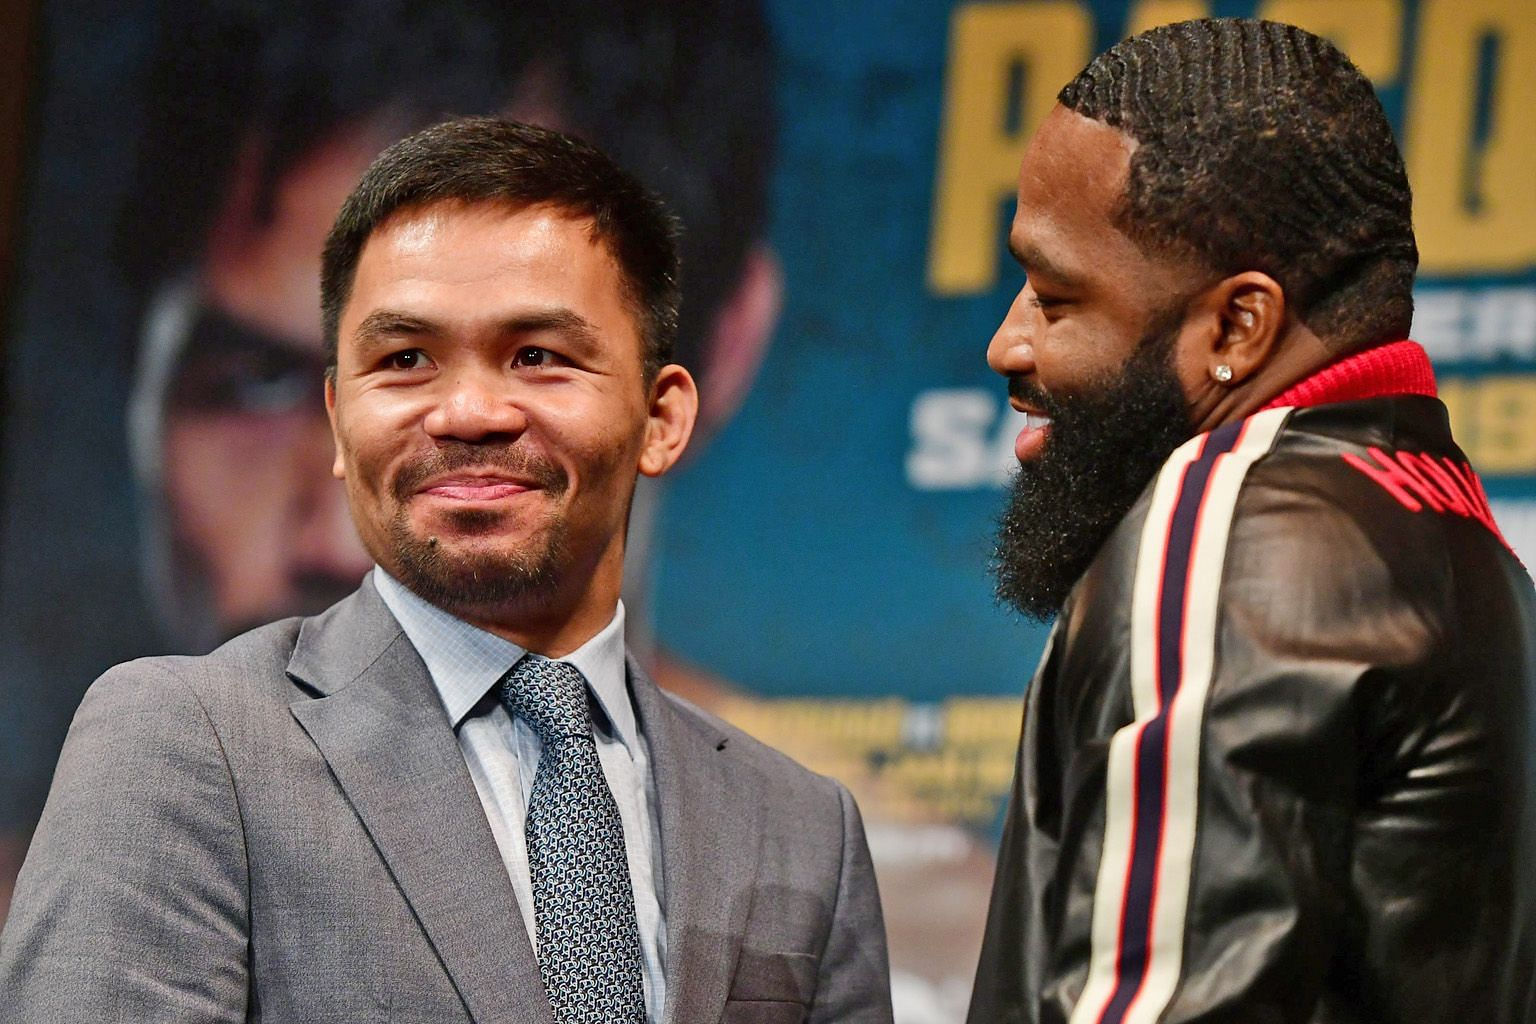 Manny Pacquiao and Adrien Broner facing off in New York on Monday for their Jan 19 welterweight fight. Pacquiao wants Freddie Roach, his long-time trainer, to return and be in his corner in Las Vegas.